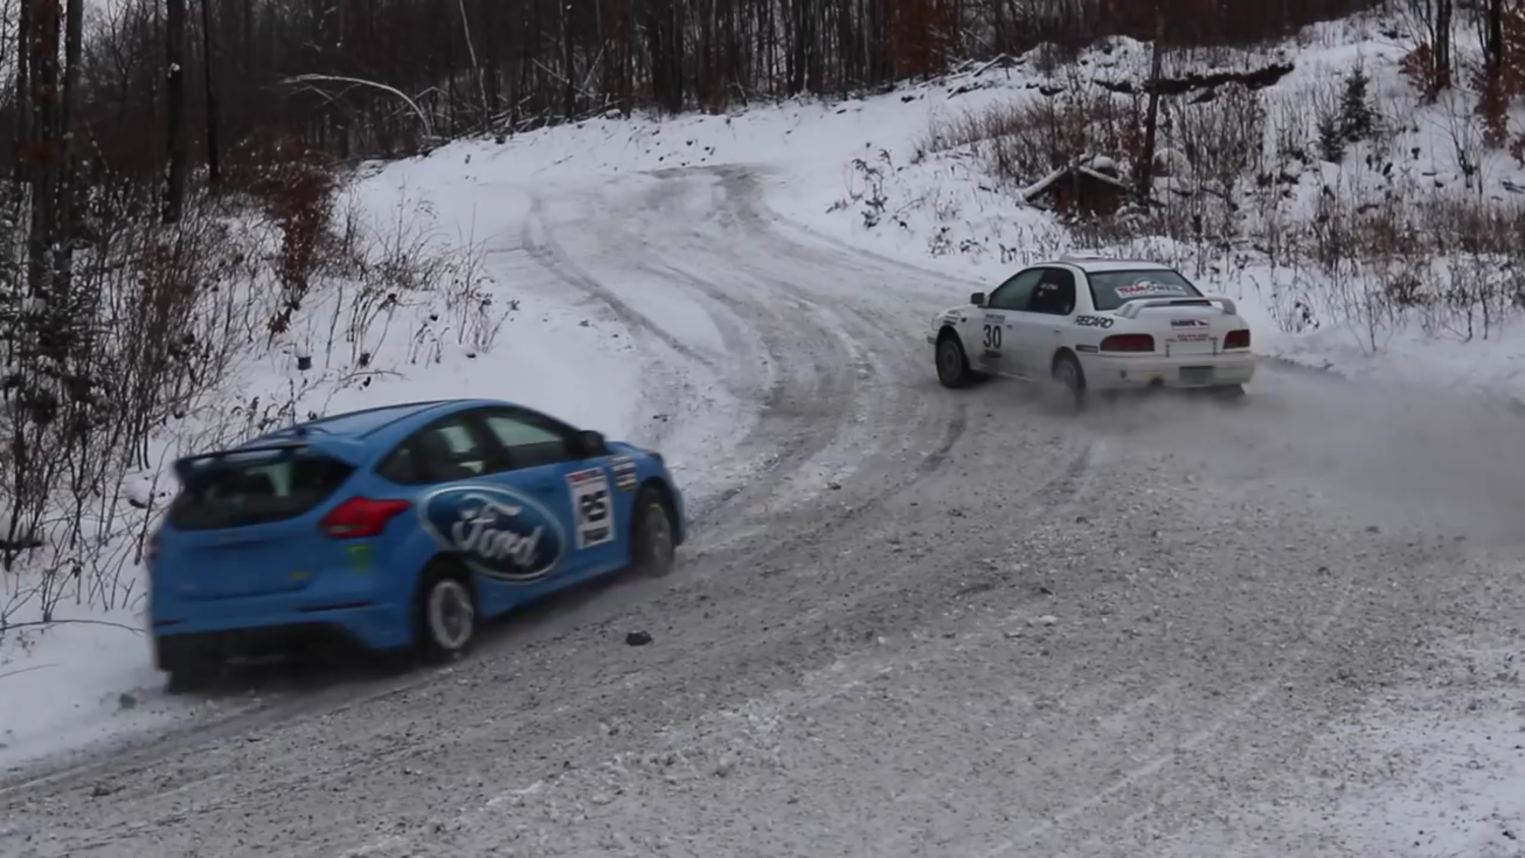 Video: How Does a Focus RS Compare with a Rally Car?